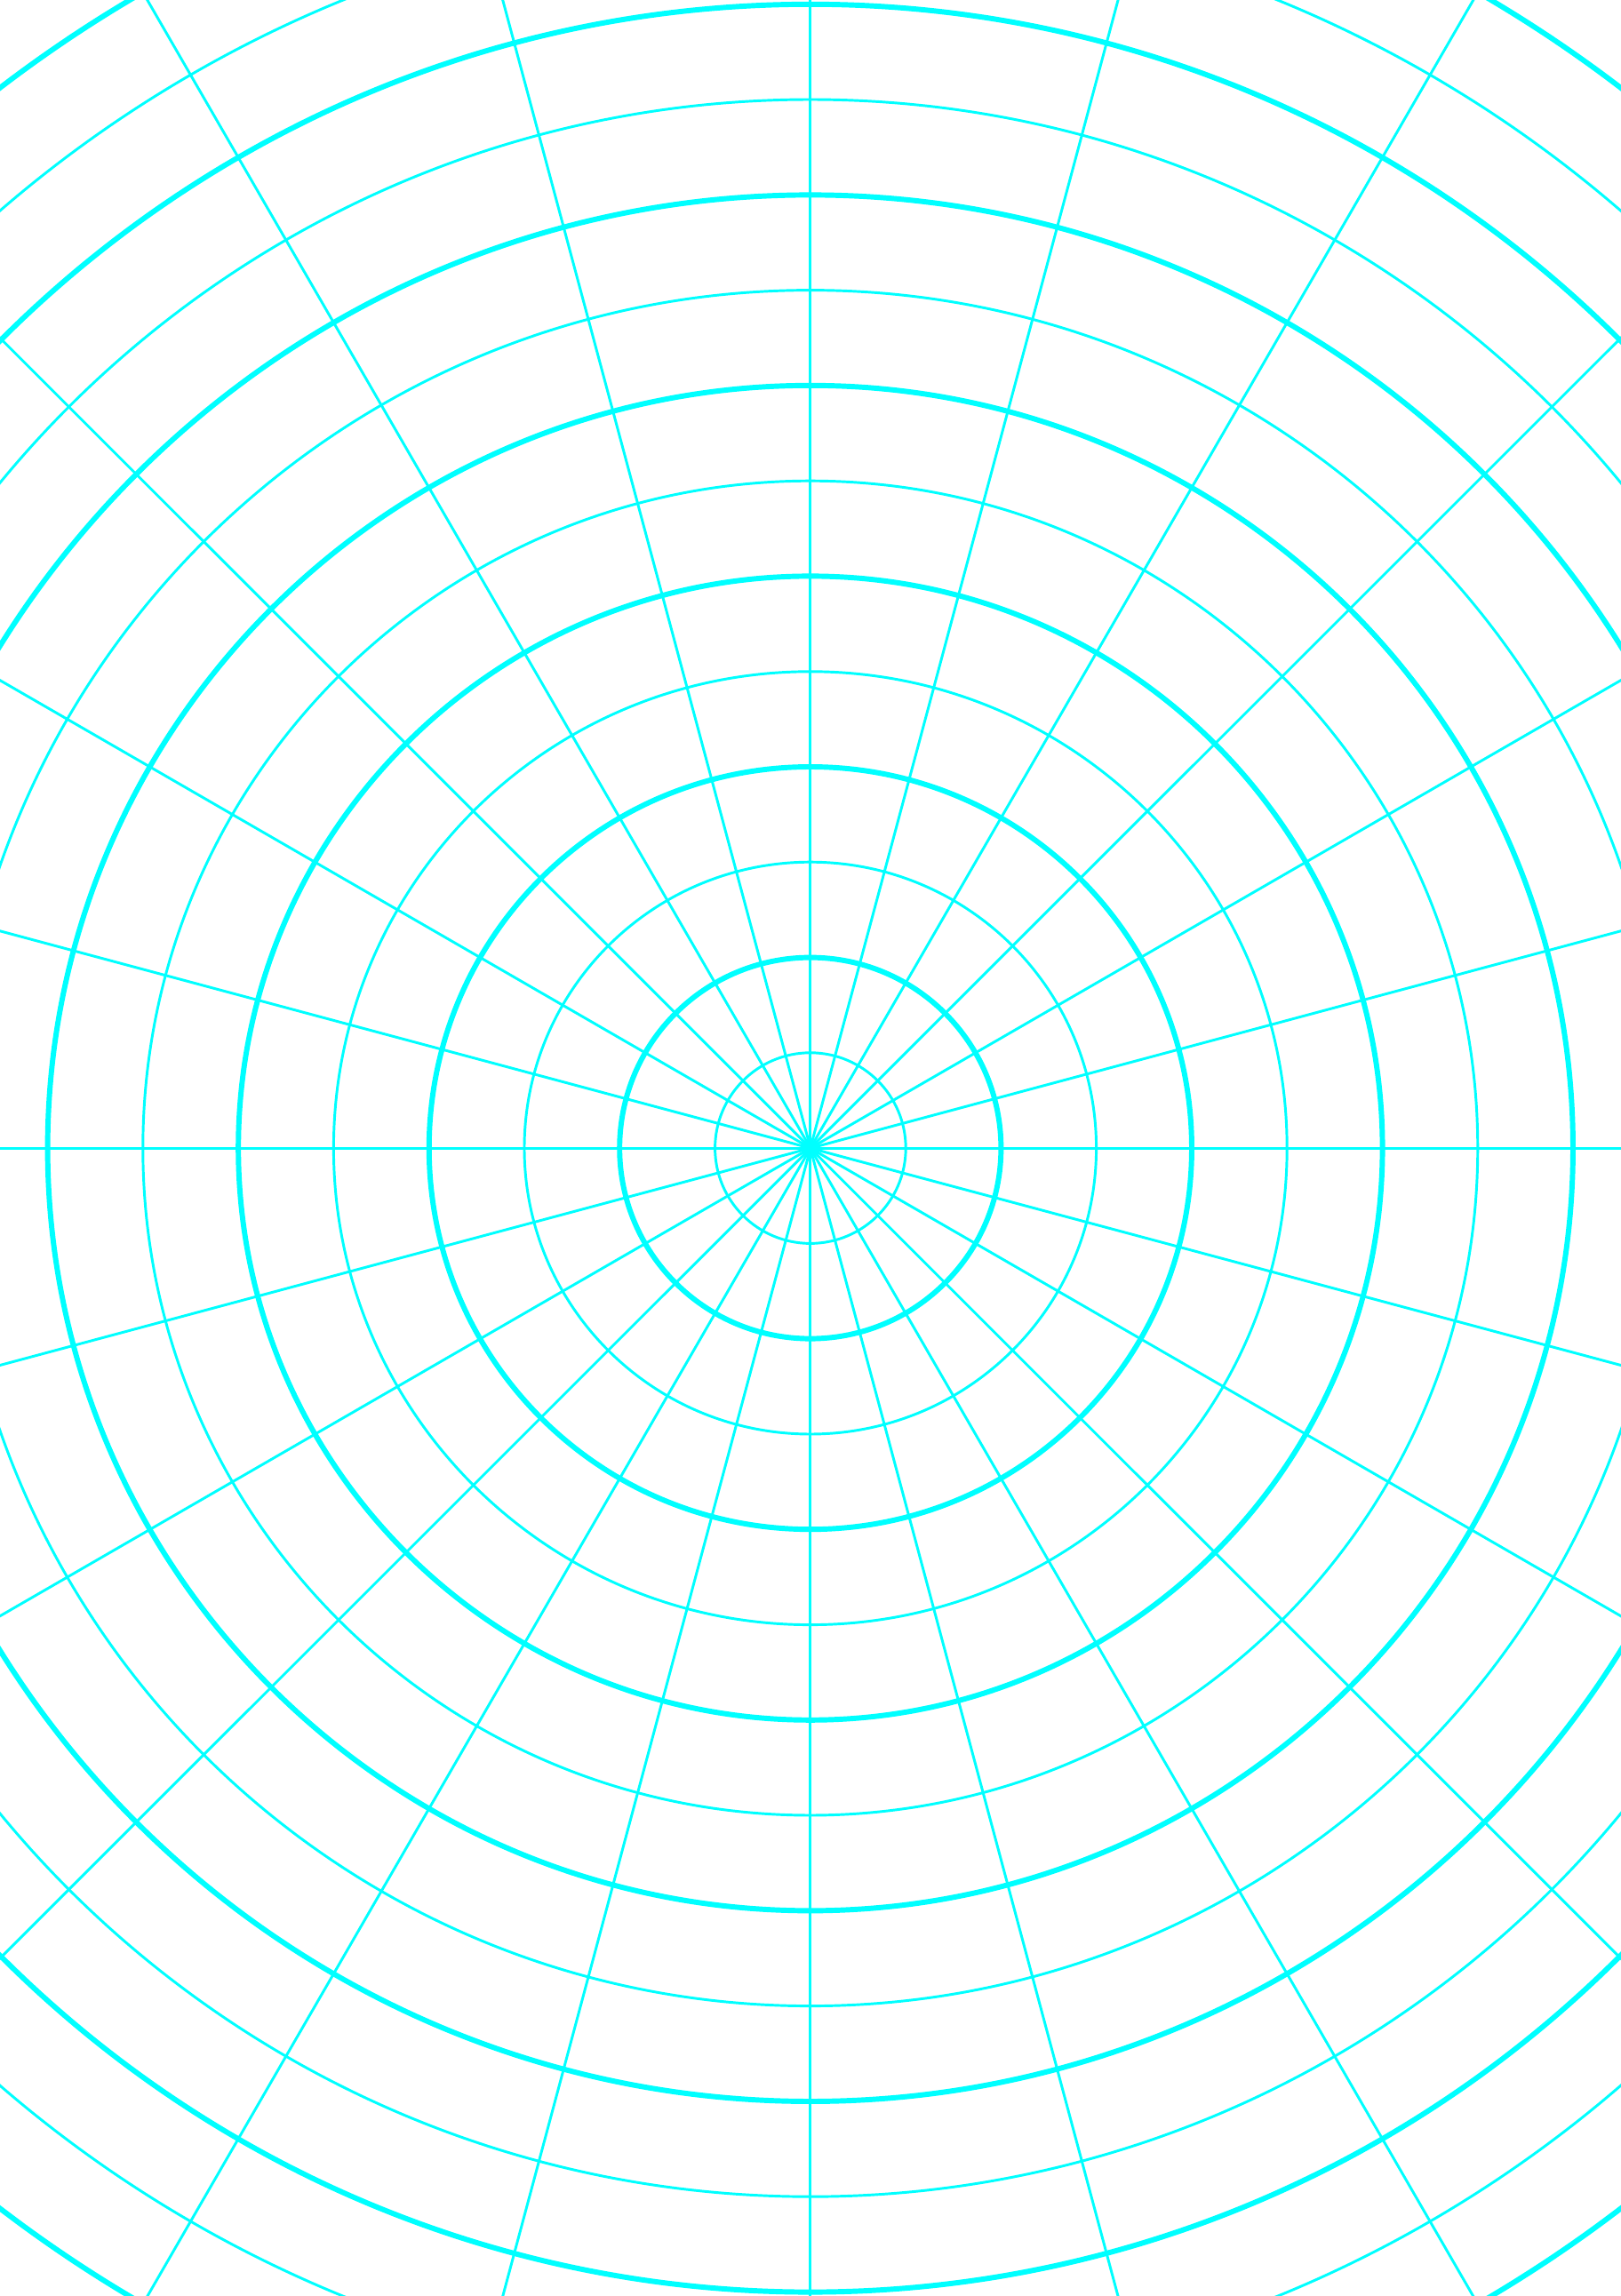 Polar Graph Paper With 15 Degree Angles And 1 2 Inch